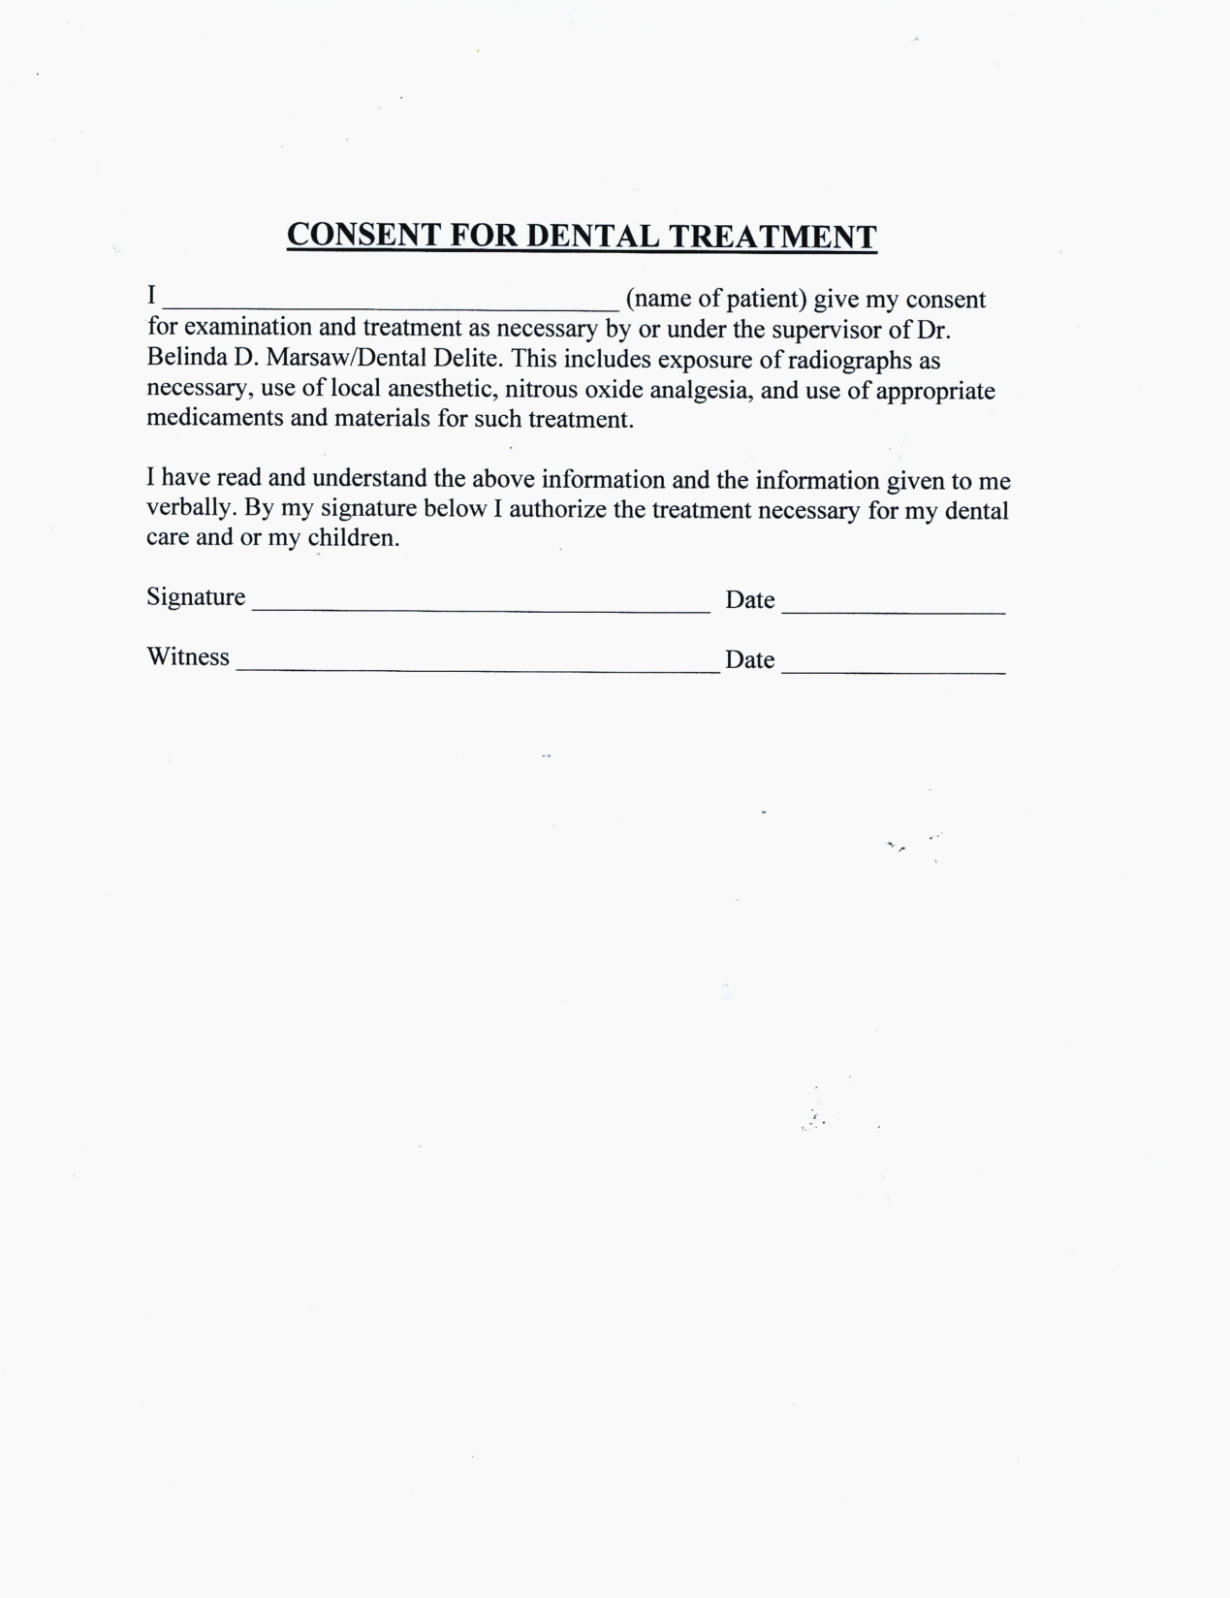 Dental Treatment Consent form Template Elegant Seven Small but Important